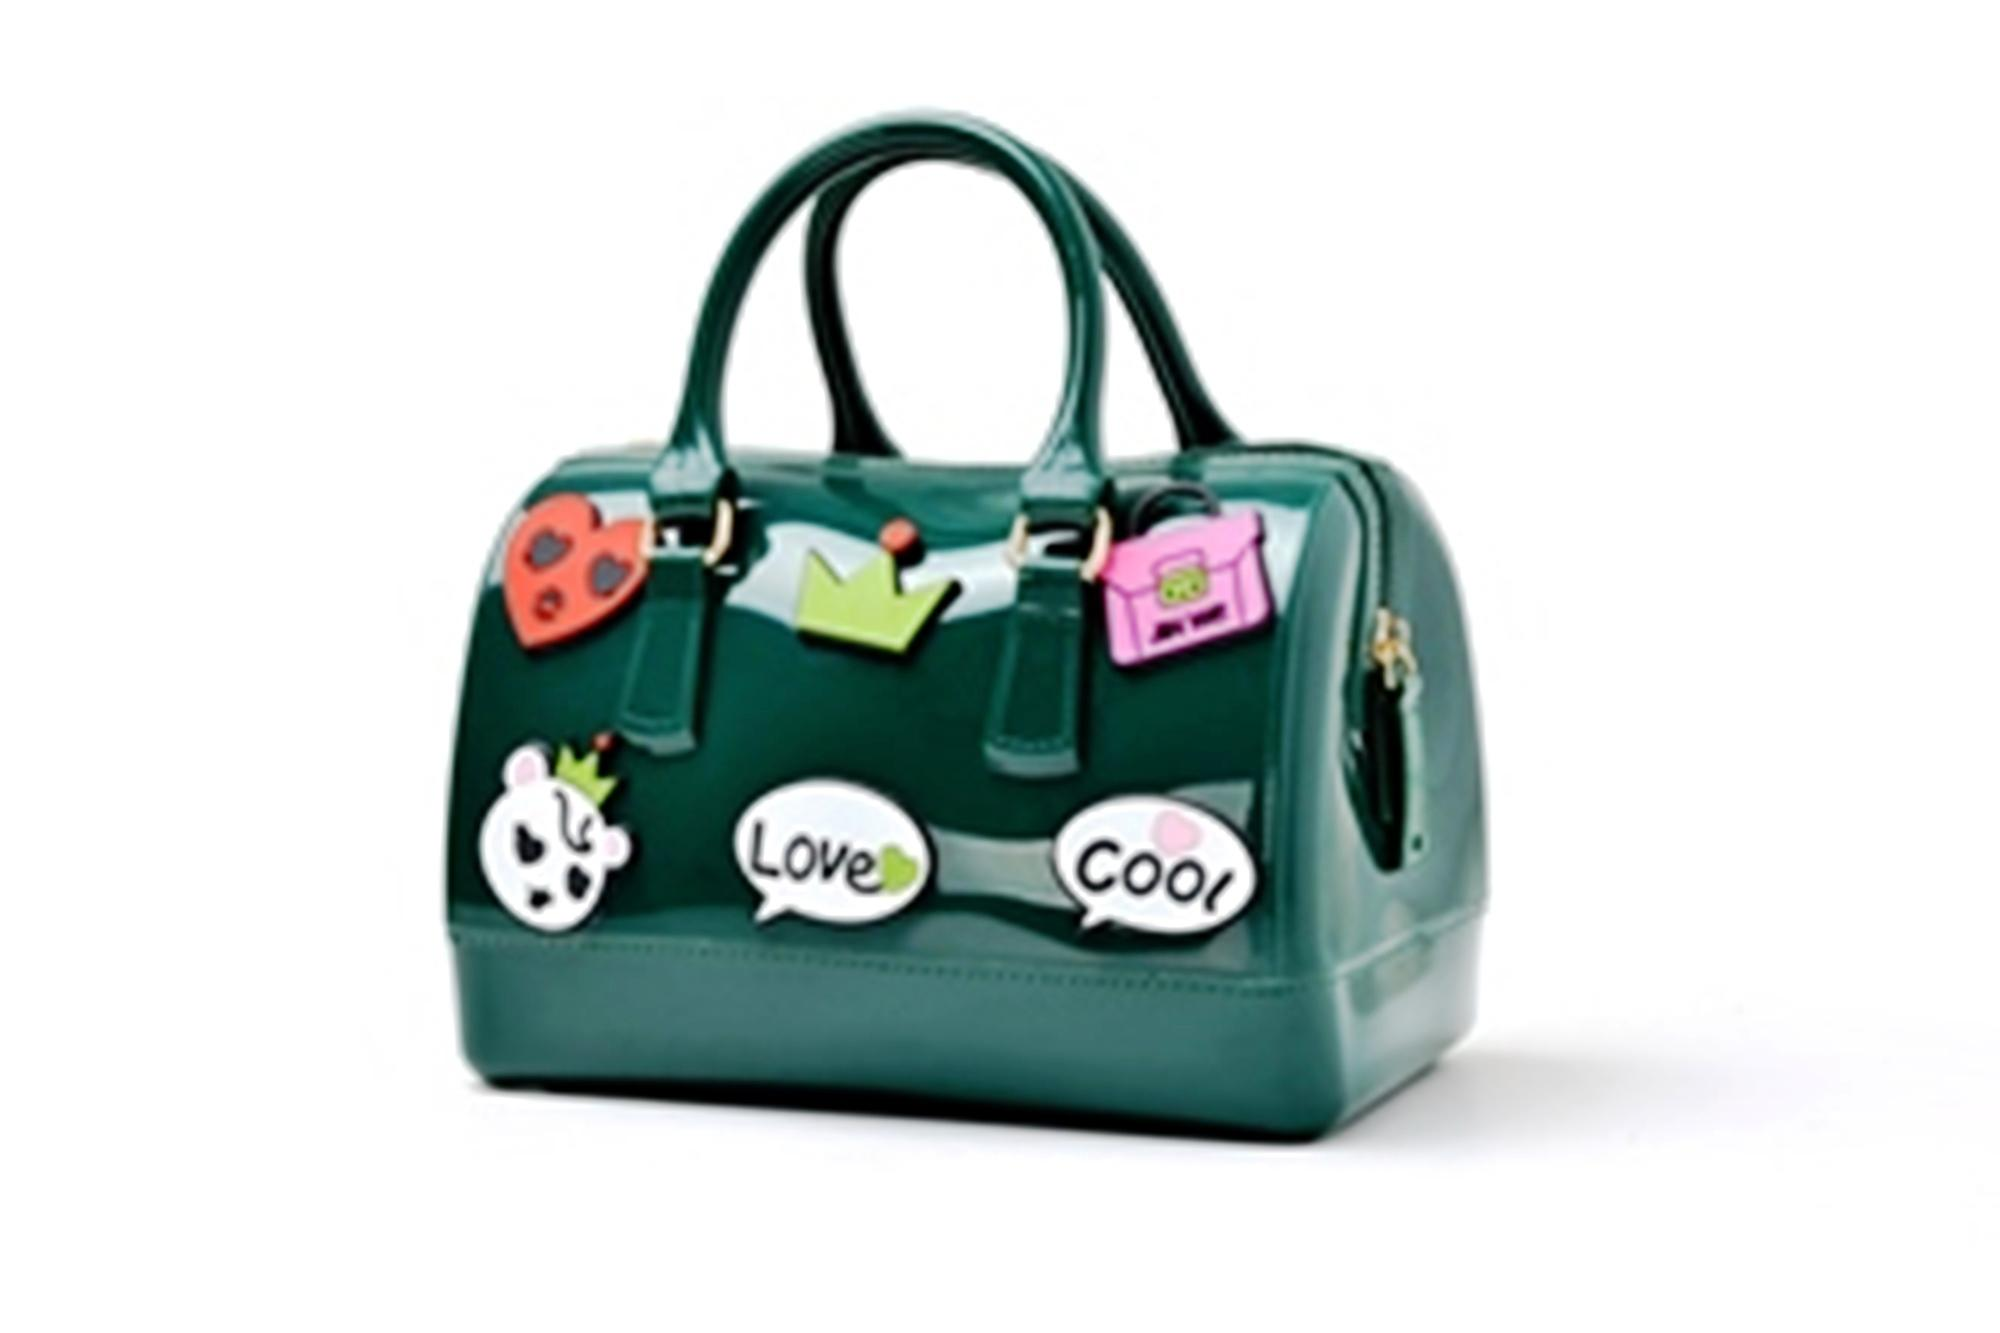 Tas Fashion Wanita Import, Tas Wanita, Tas Import Grandy's Jelly Furla Patch Sticker